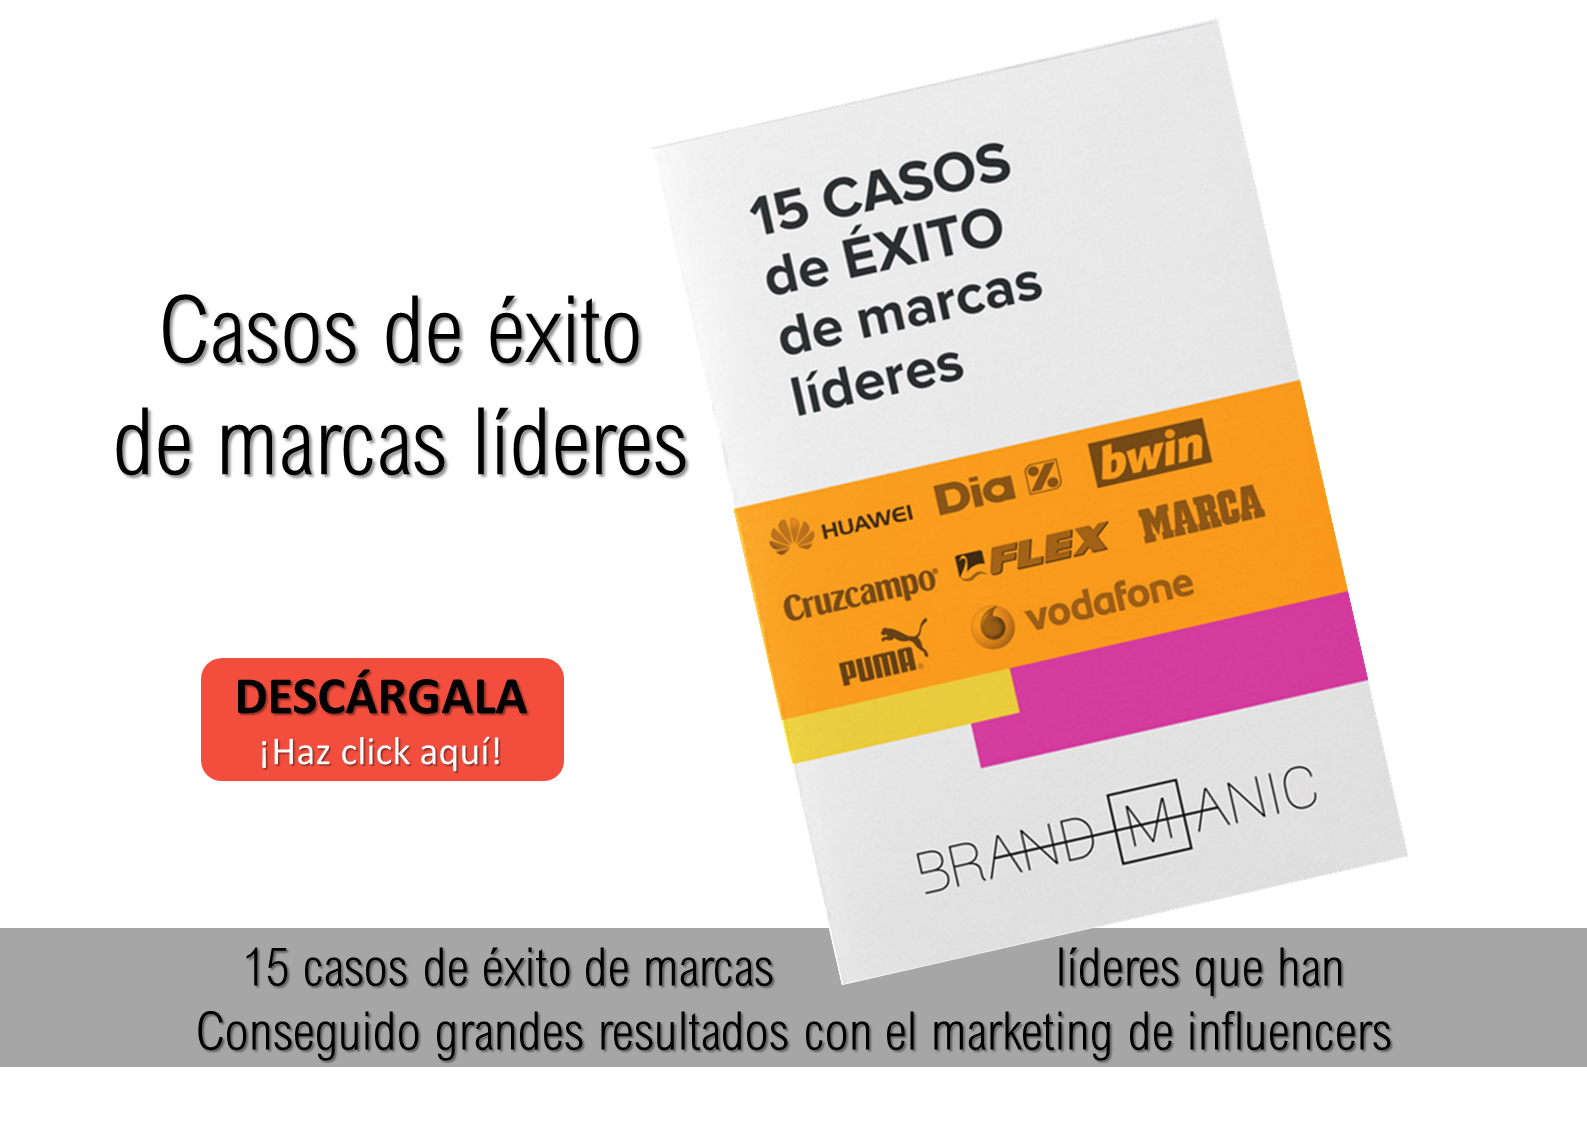 Empresas de diferentes sectores que han conseguido el éxito en el marketing de influencers